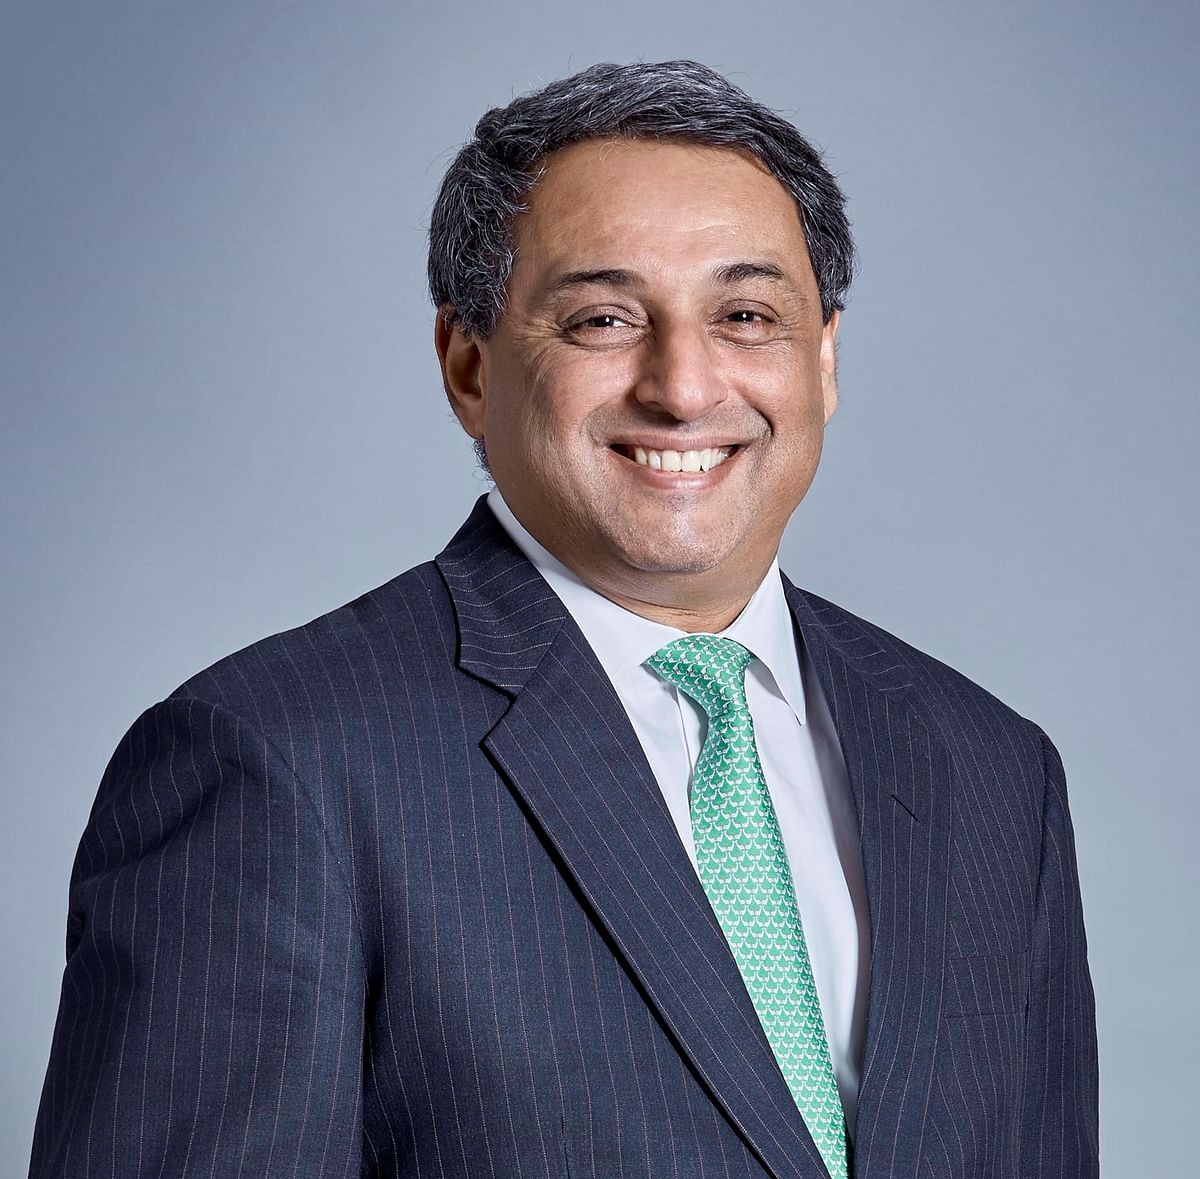 CII president TV Narendran says India to grow at 9.5 % this year, 9% growth over medium term achievable